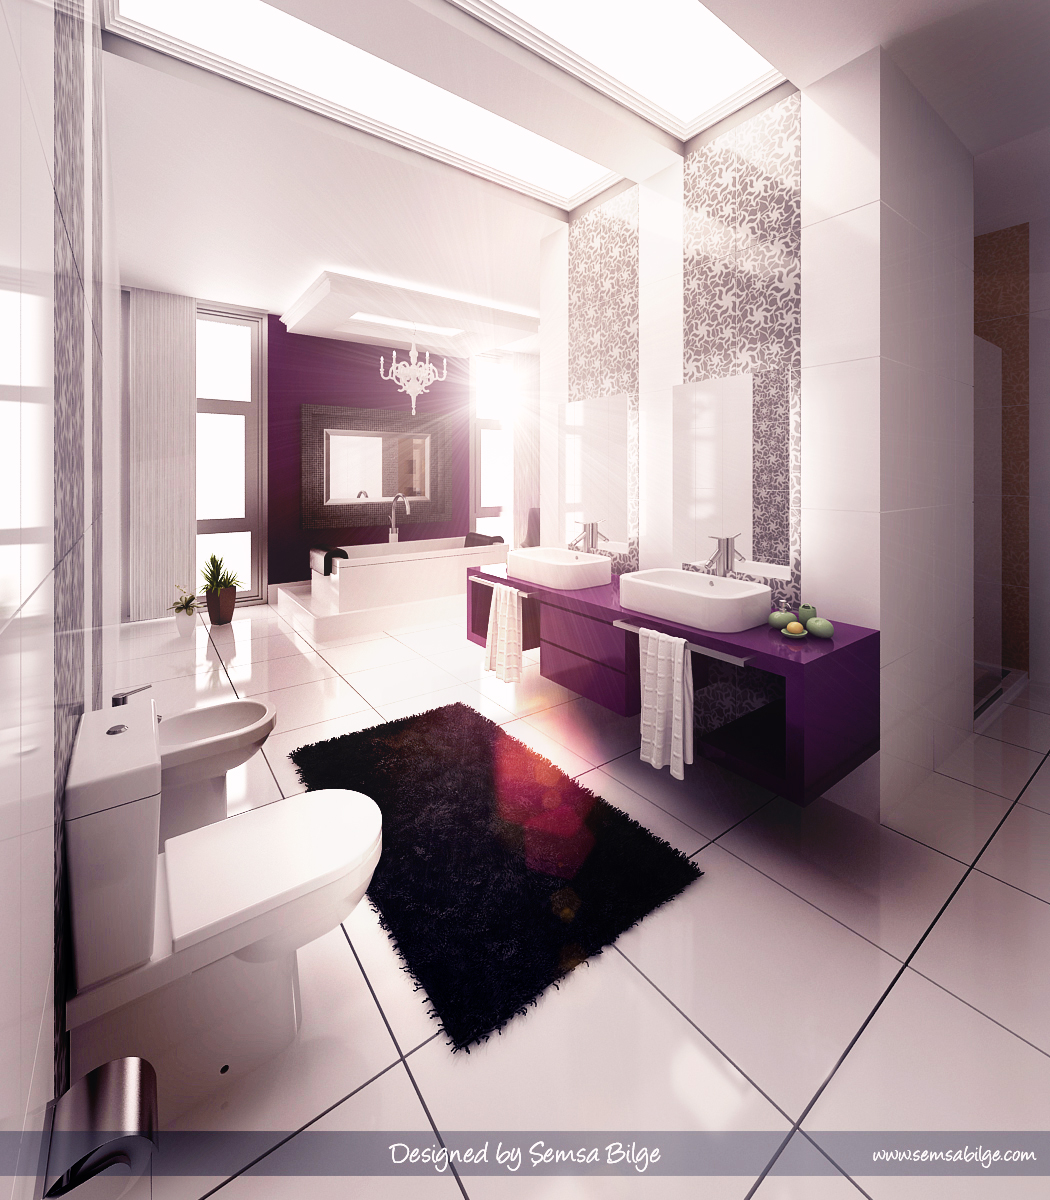 bathroom designs ideas interior design interior decorating ideas